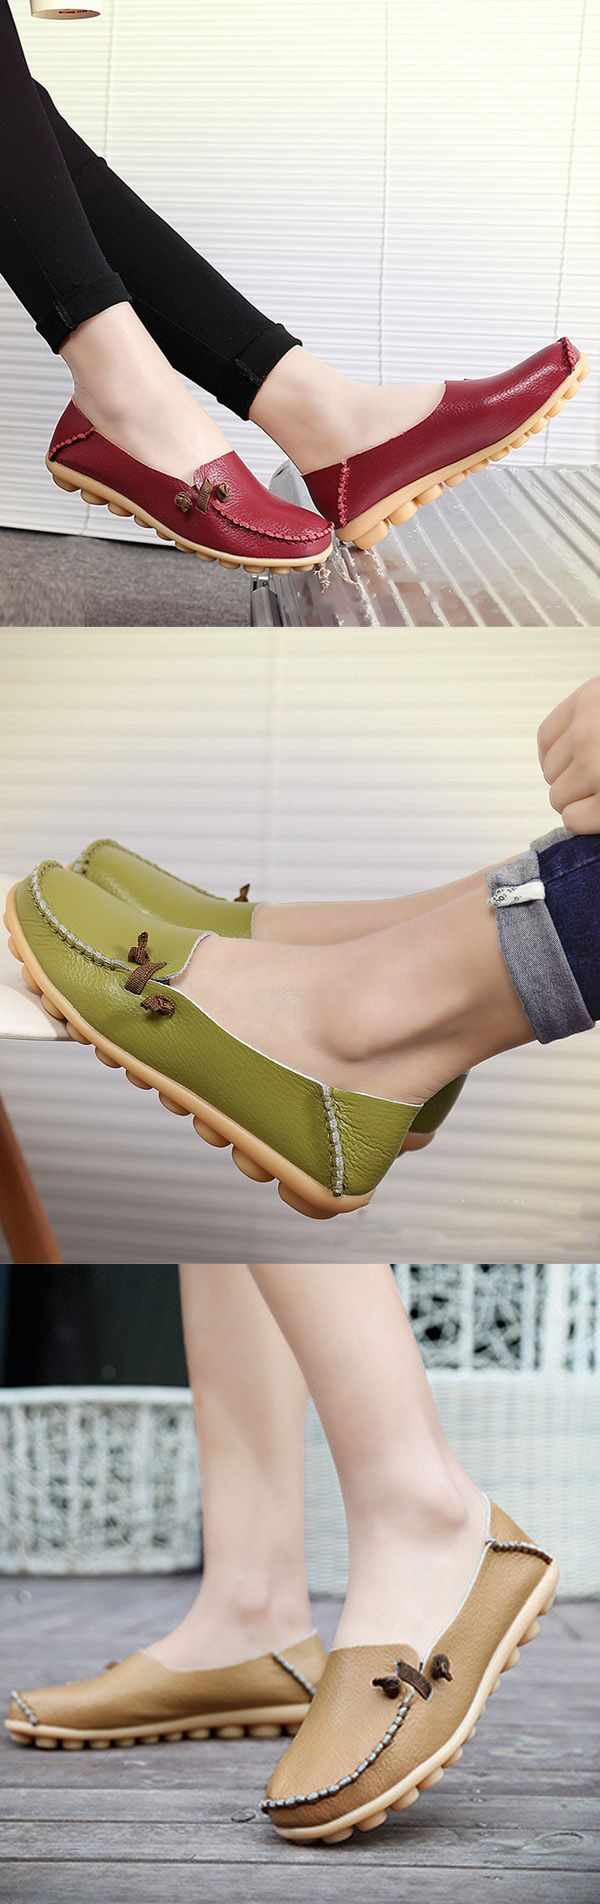 26 Beste For My Feet images on Pinterest   Ladies shoes, Comfortable